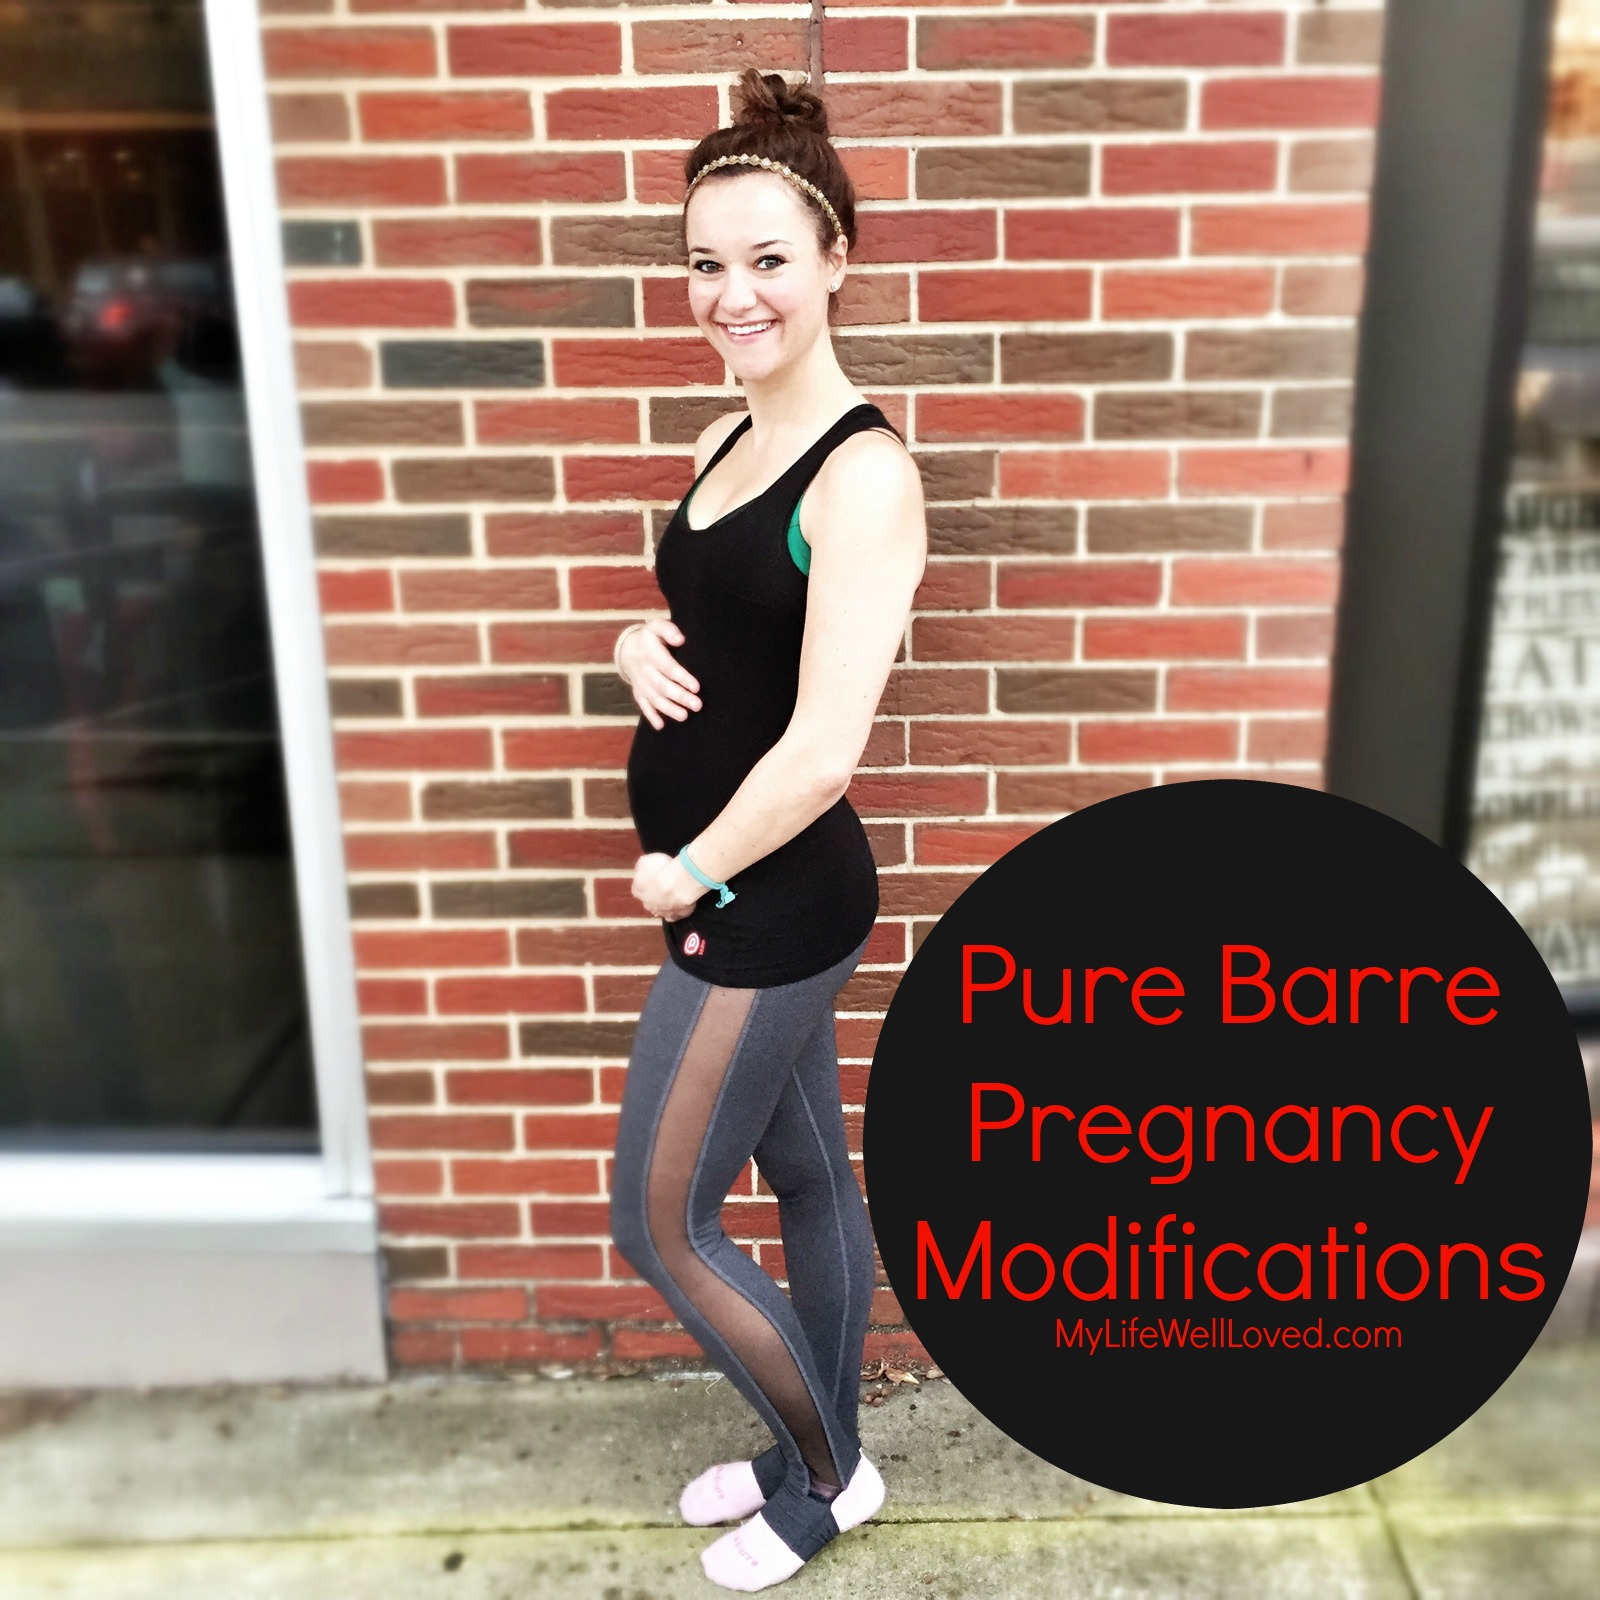 Pure Barre Pregnancy Modifications broken down by sections of class